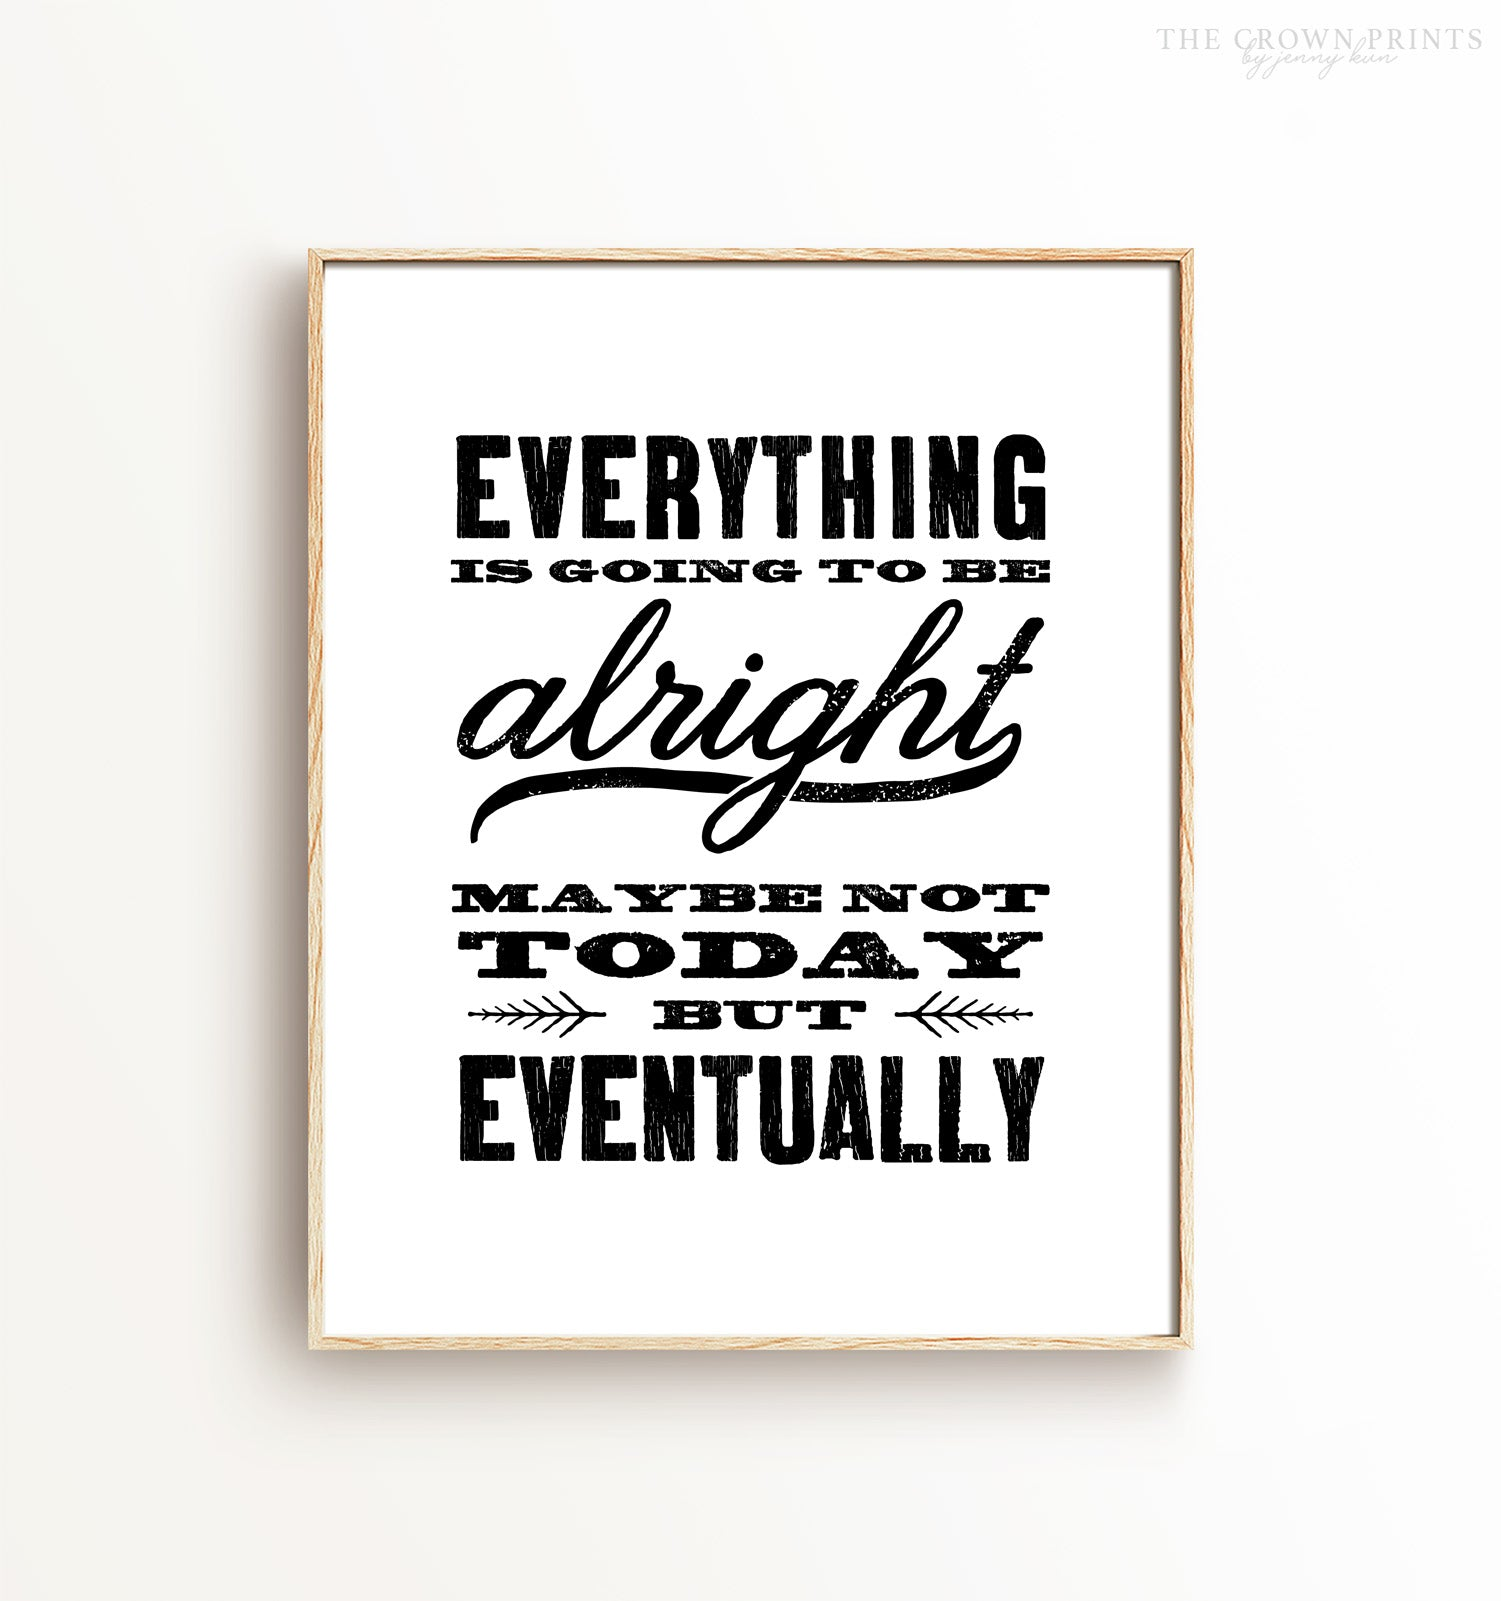 Everything is going to be alright - maybe not today, but eventually Printable Art